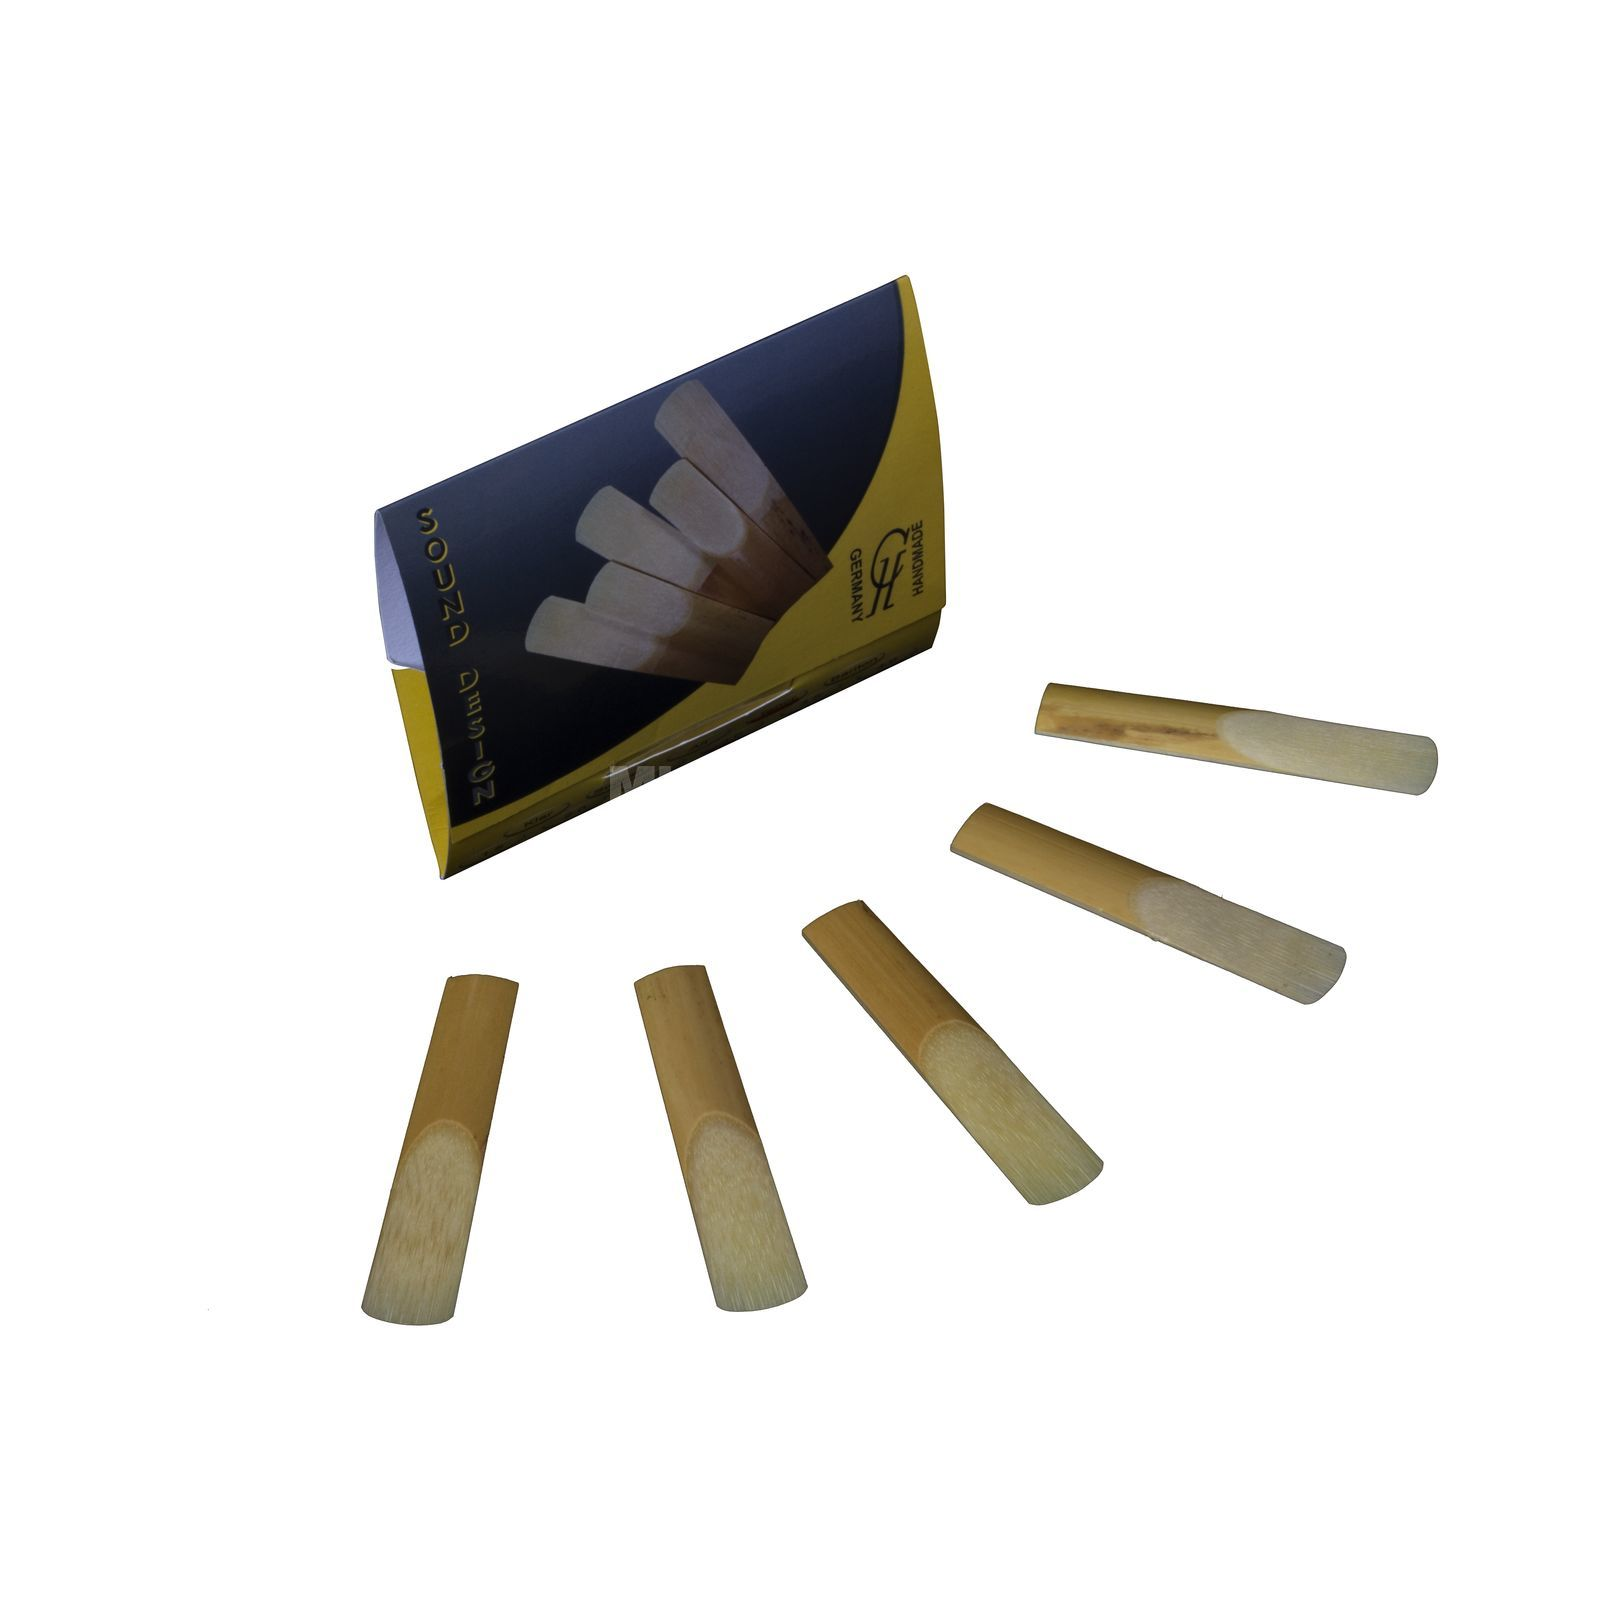 CH Sound Design Tenor Saxophone 3 - Pack of 5 Product Image